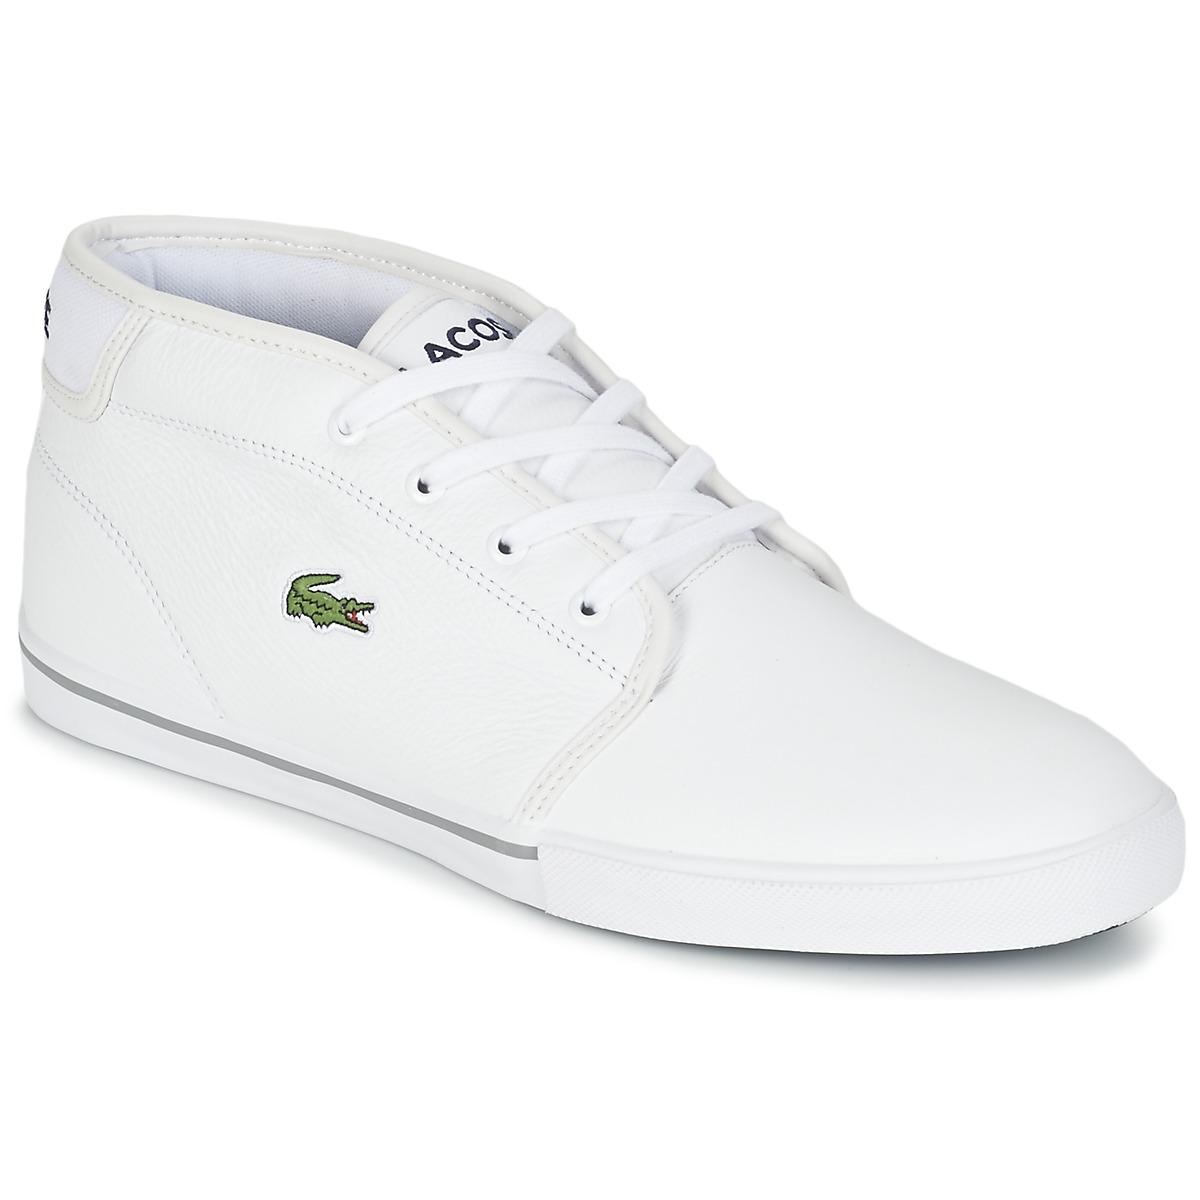 e3ee13660a994e Lacoste Ampthill Lcr3 Men s Shoes (high-top Trainers) In White in ...